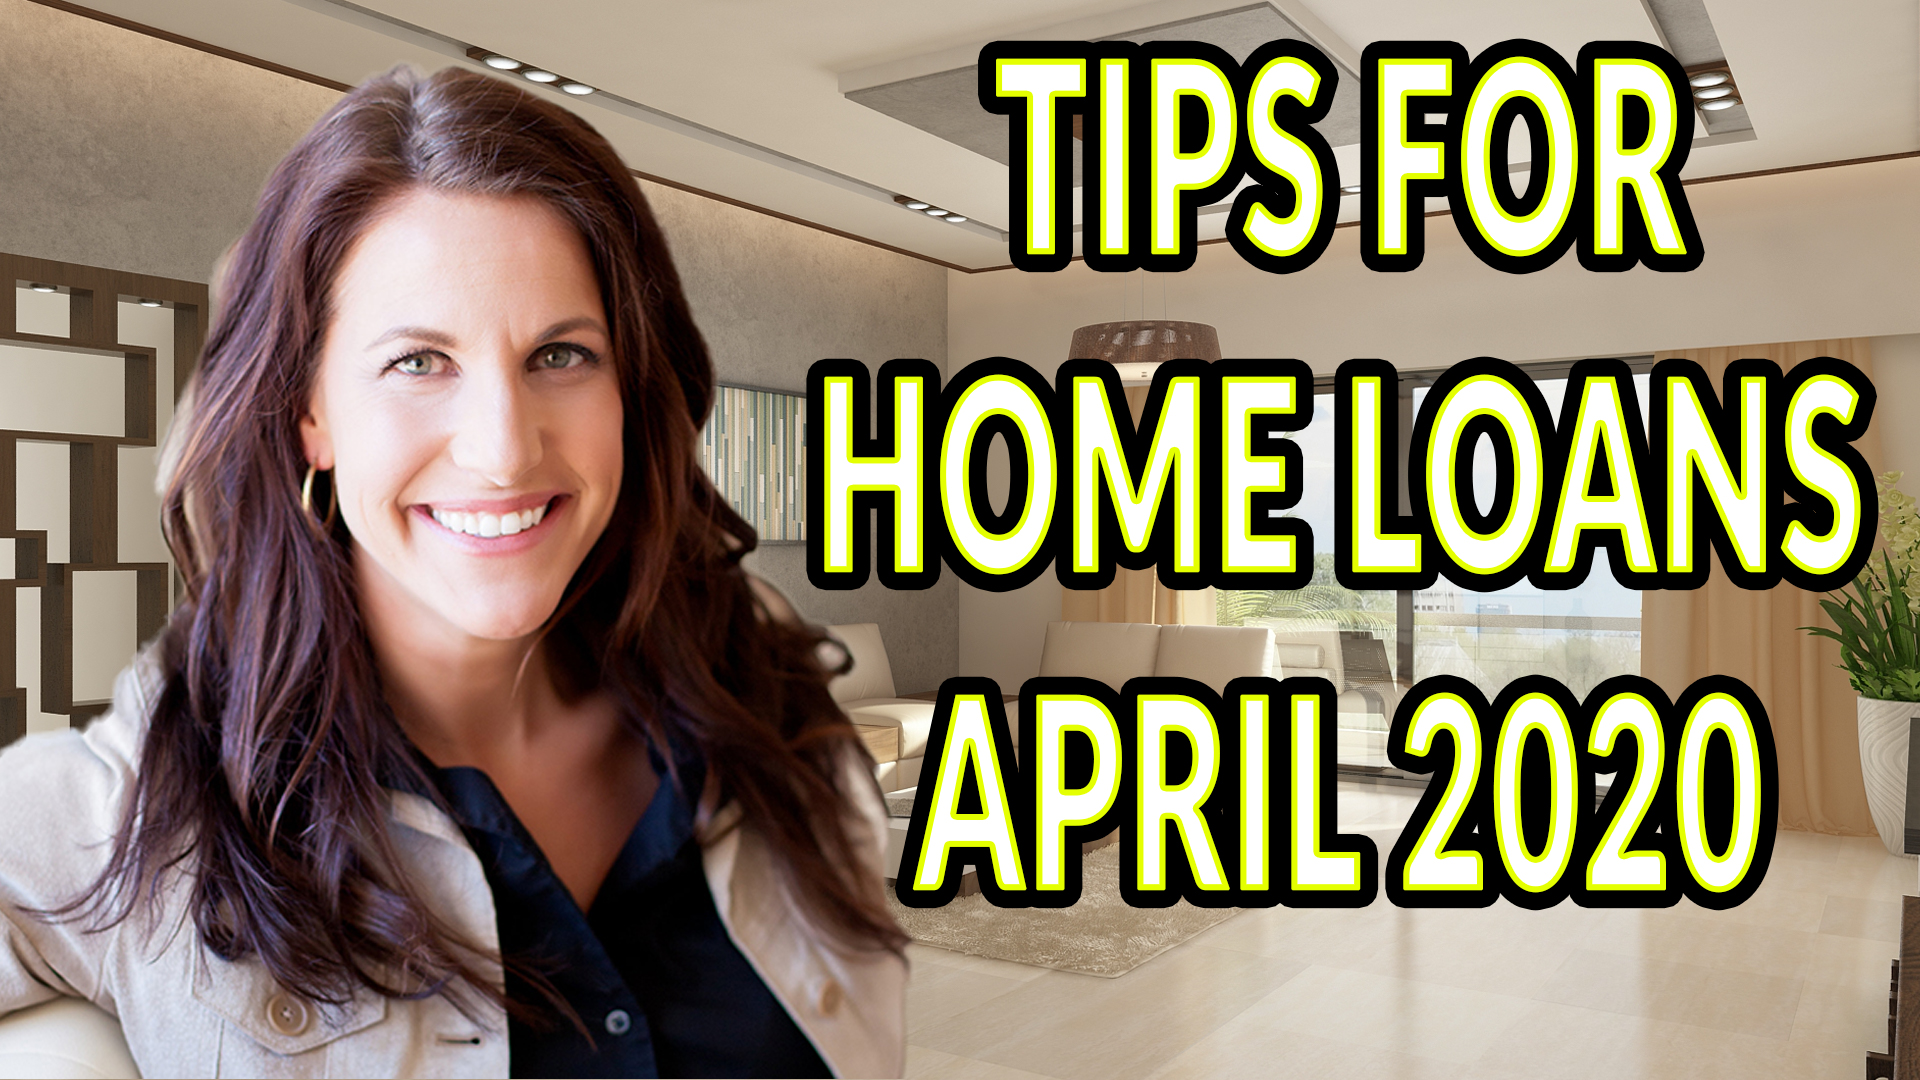 A Mortgage Expert's Tips for Home Loans